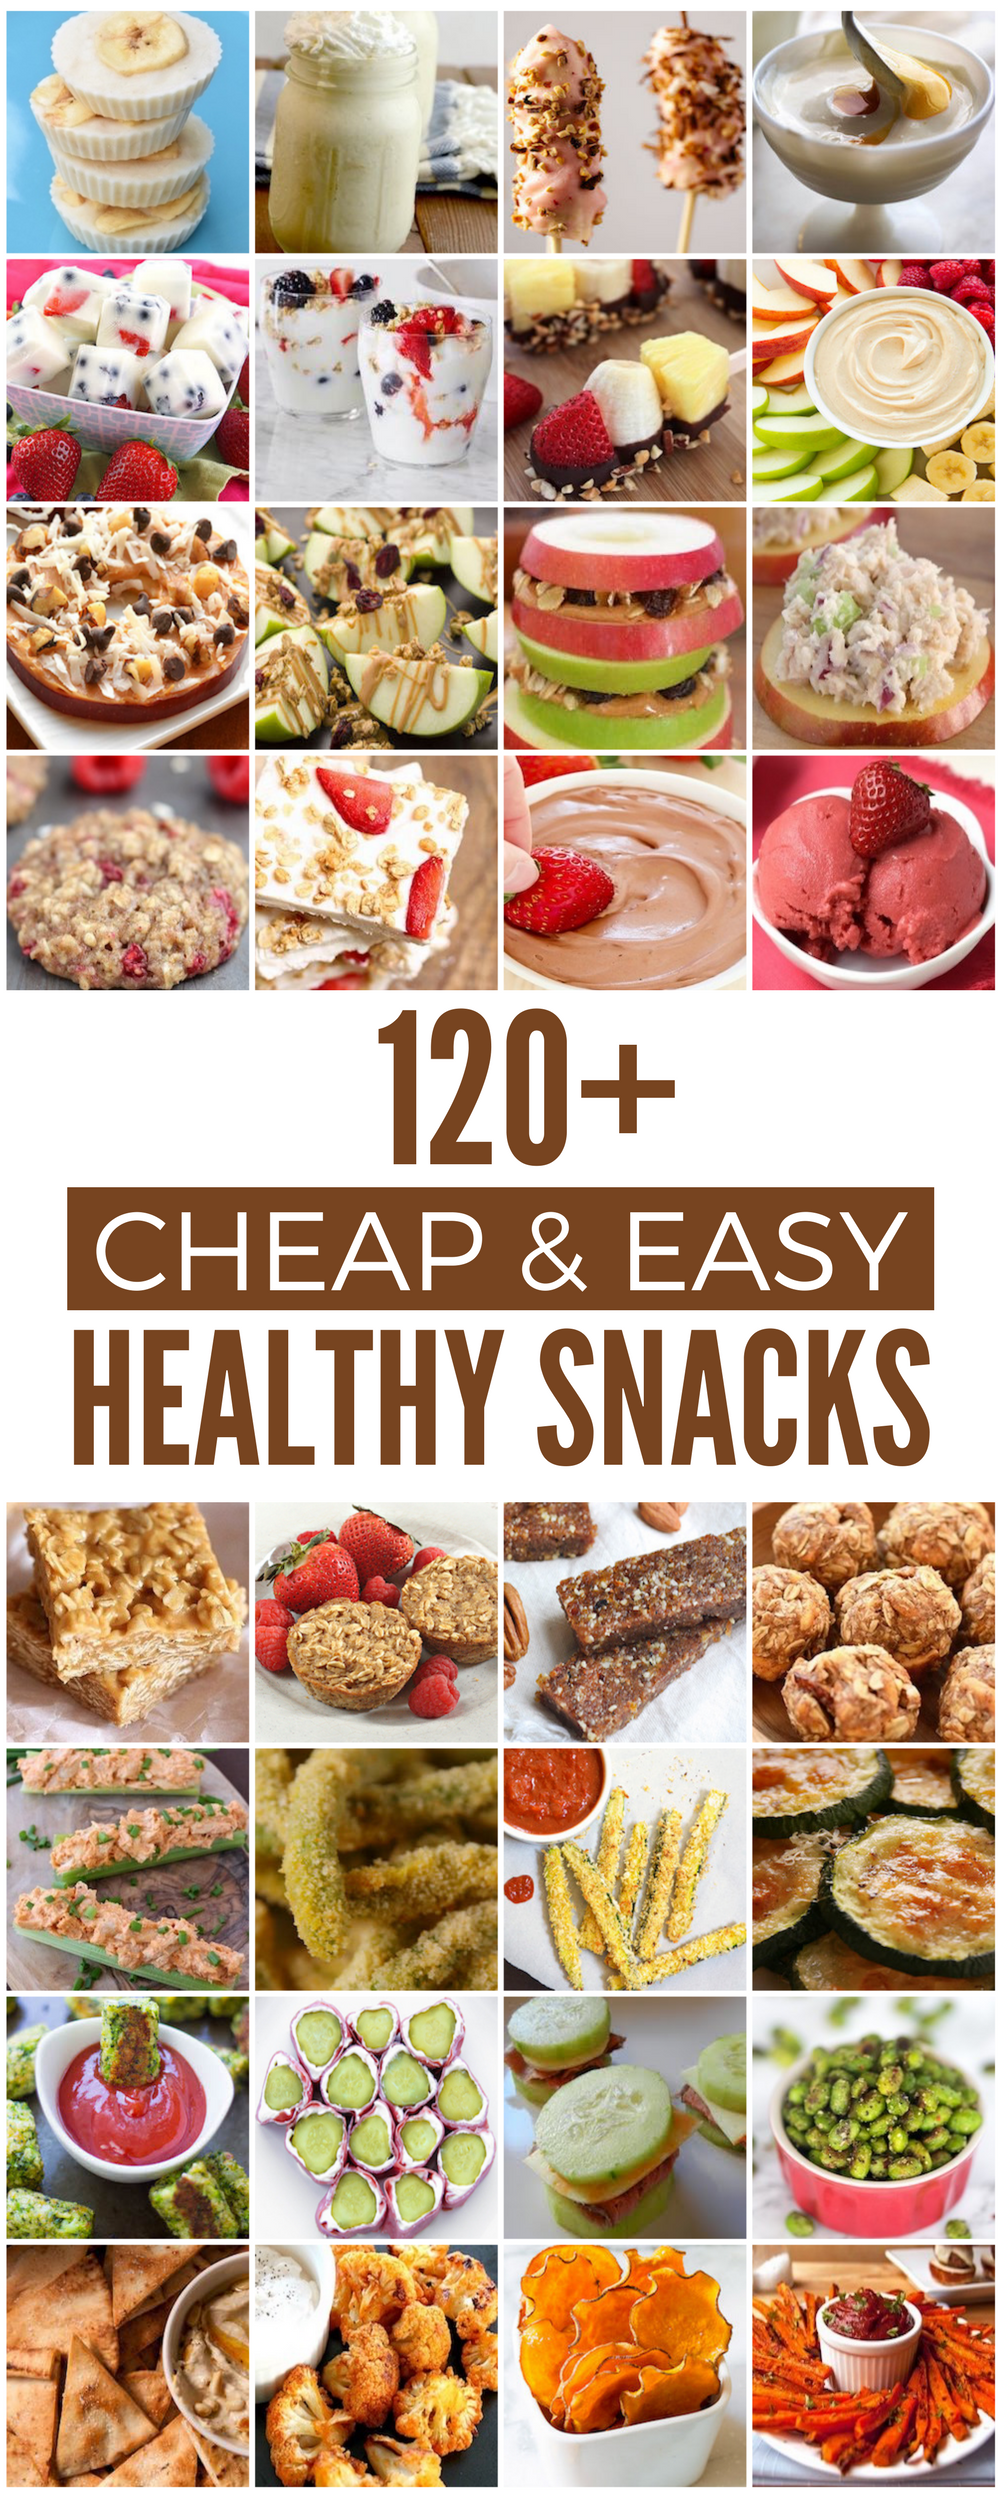 120 Cheap Healthy Snacks Prudent Penny Pincher